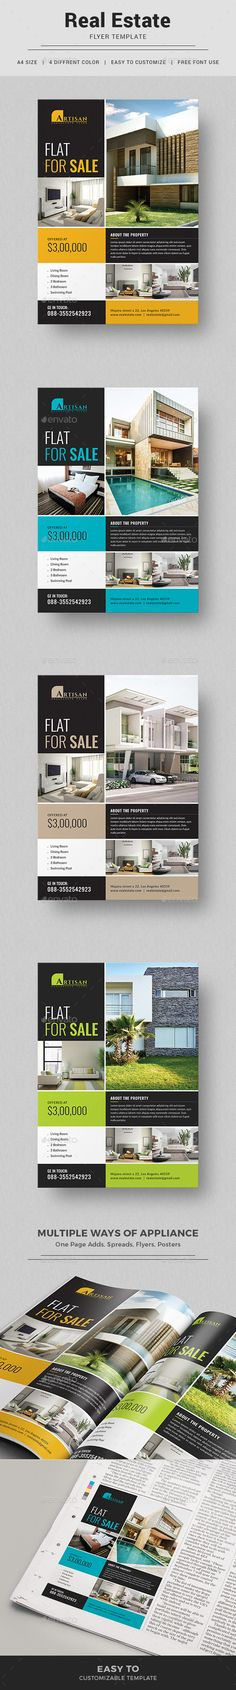 Real Estate Flyer Template PSD. Download here: https://graphicriver.net/item/real-estate-flyer/17525381?ref=ksioks